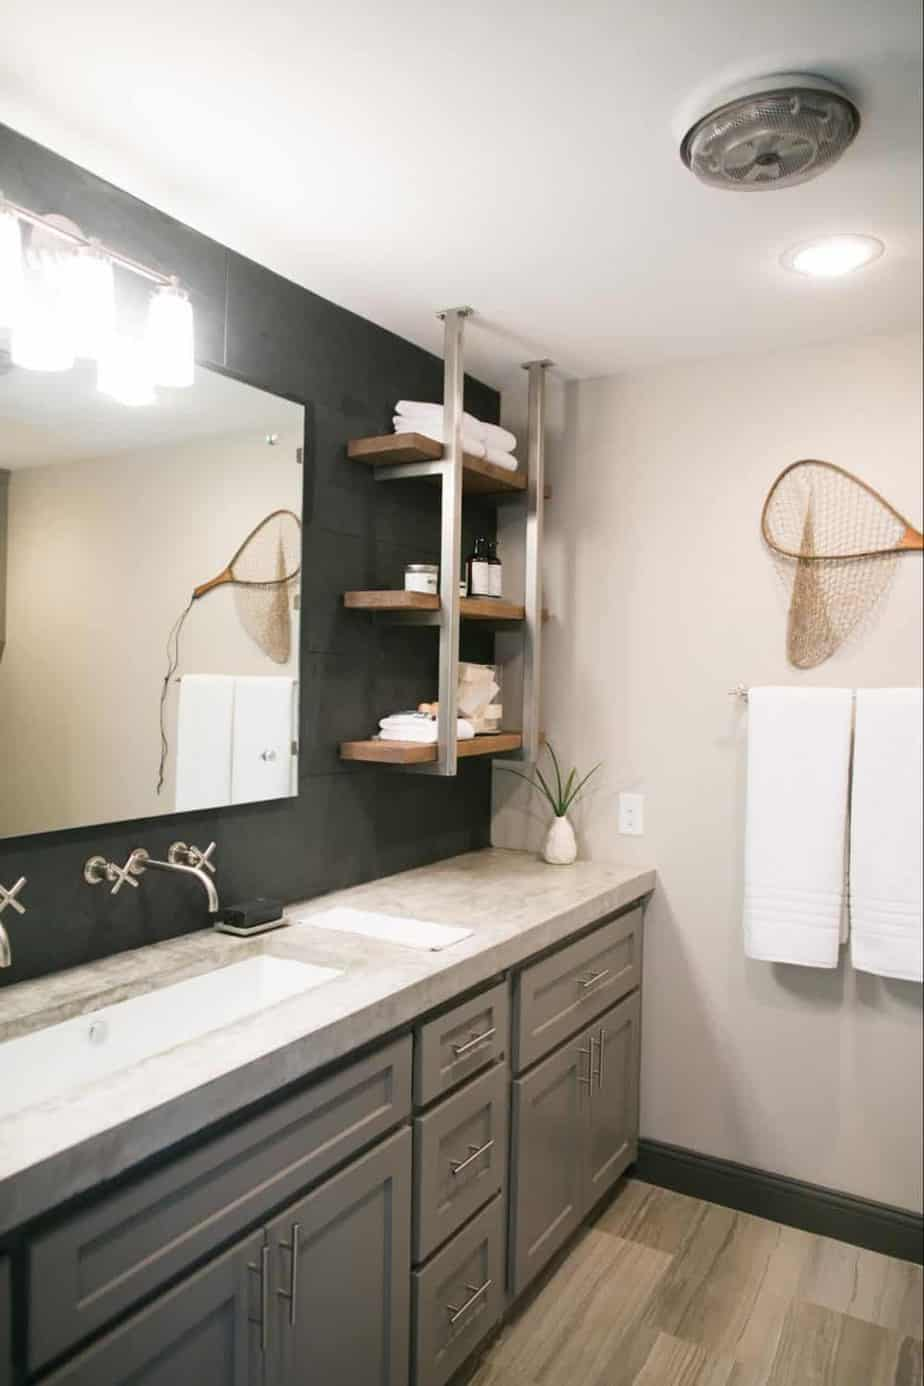 Fixer Upper bathroom with concrete countertops